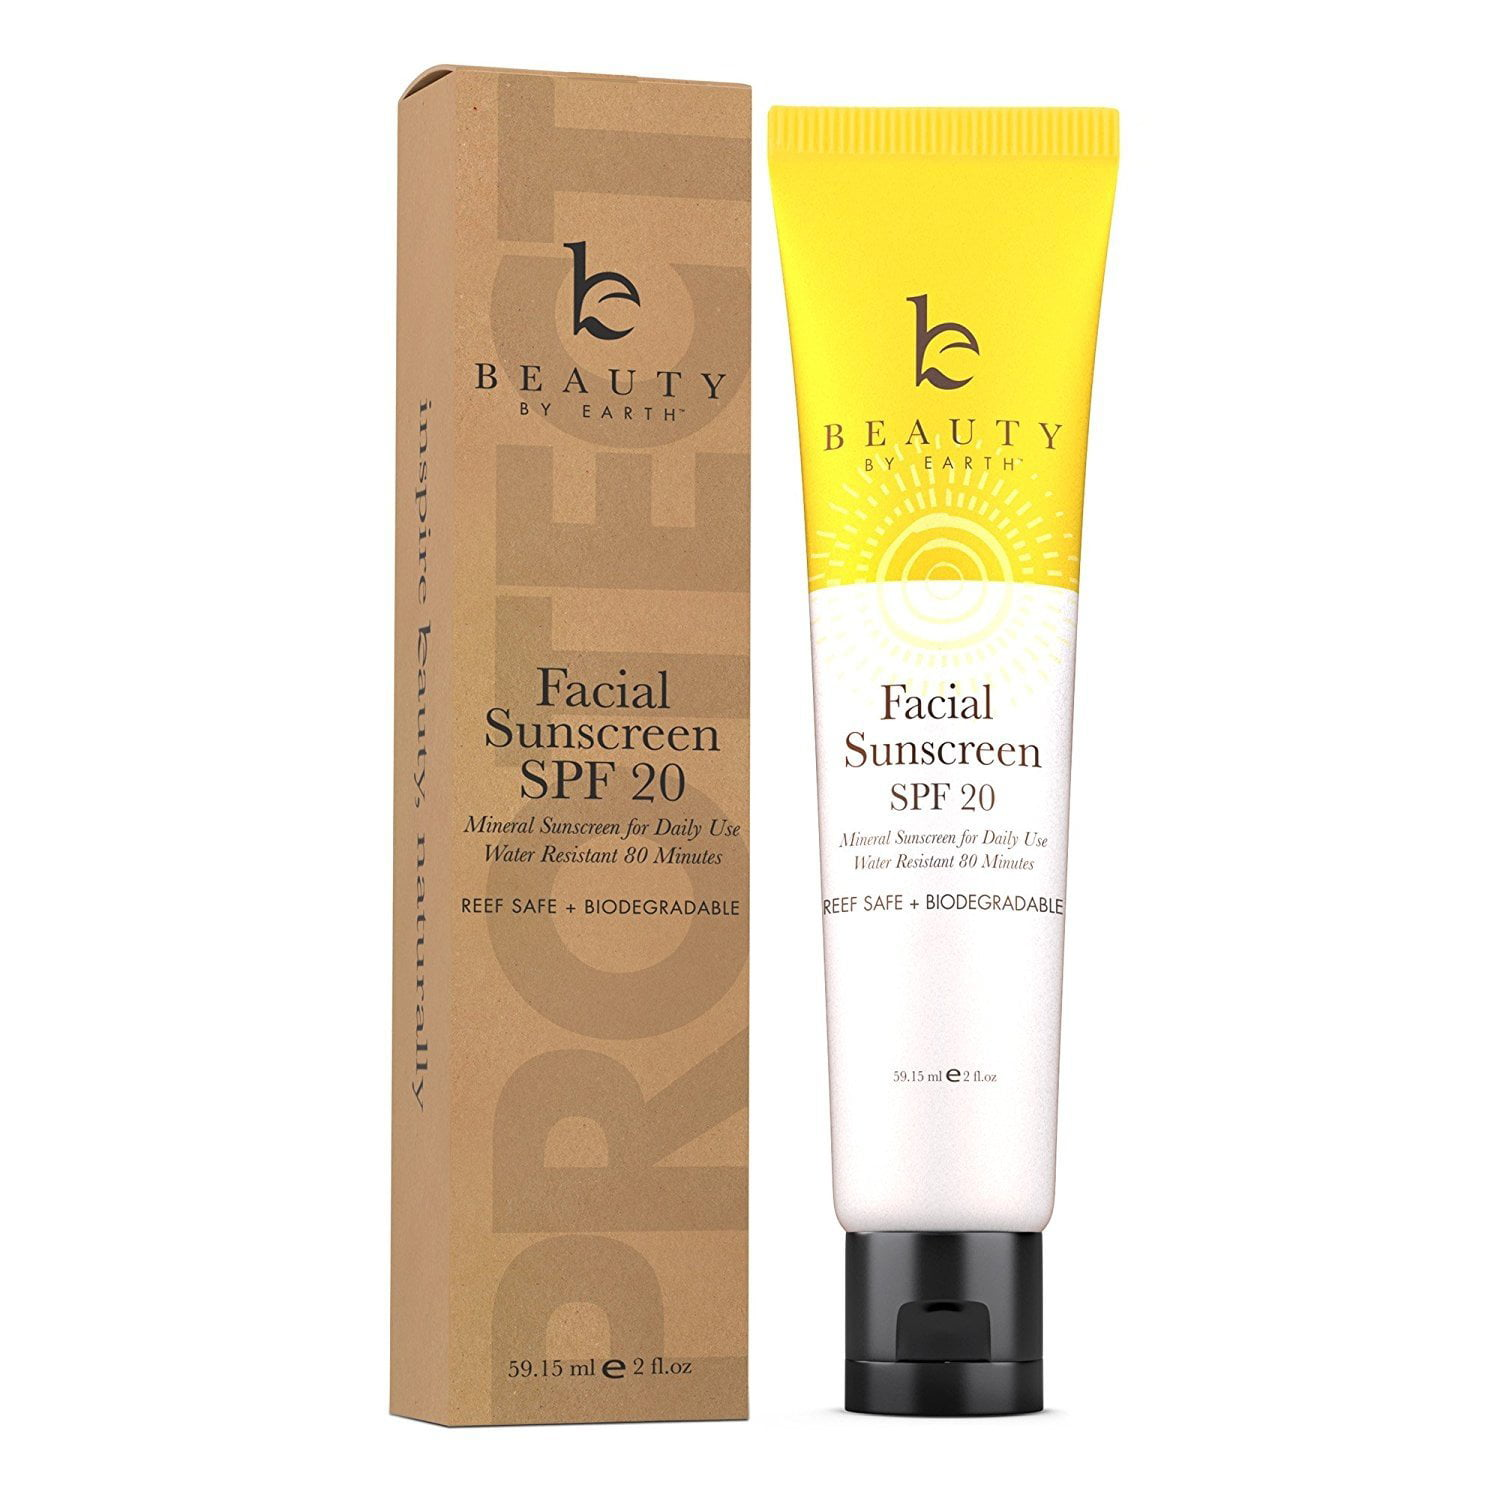 Facial Sunscreen SPF 20